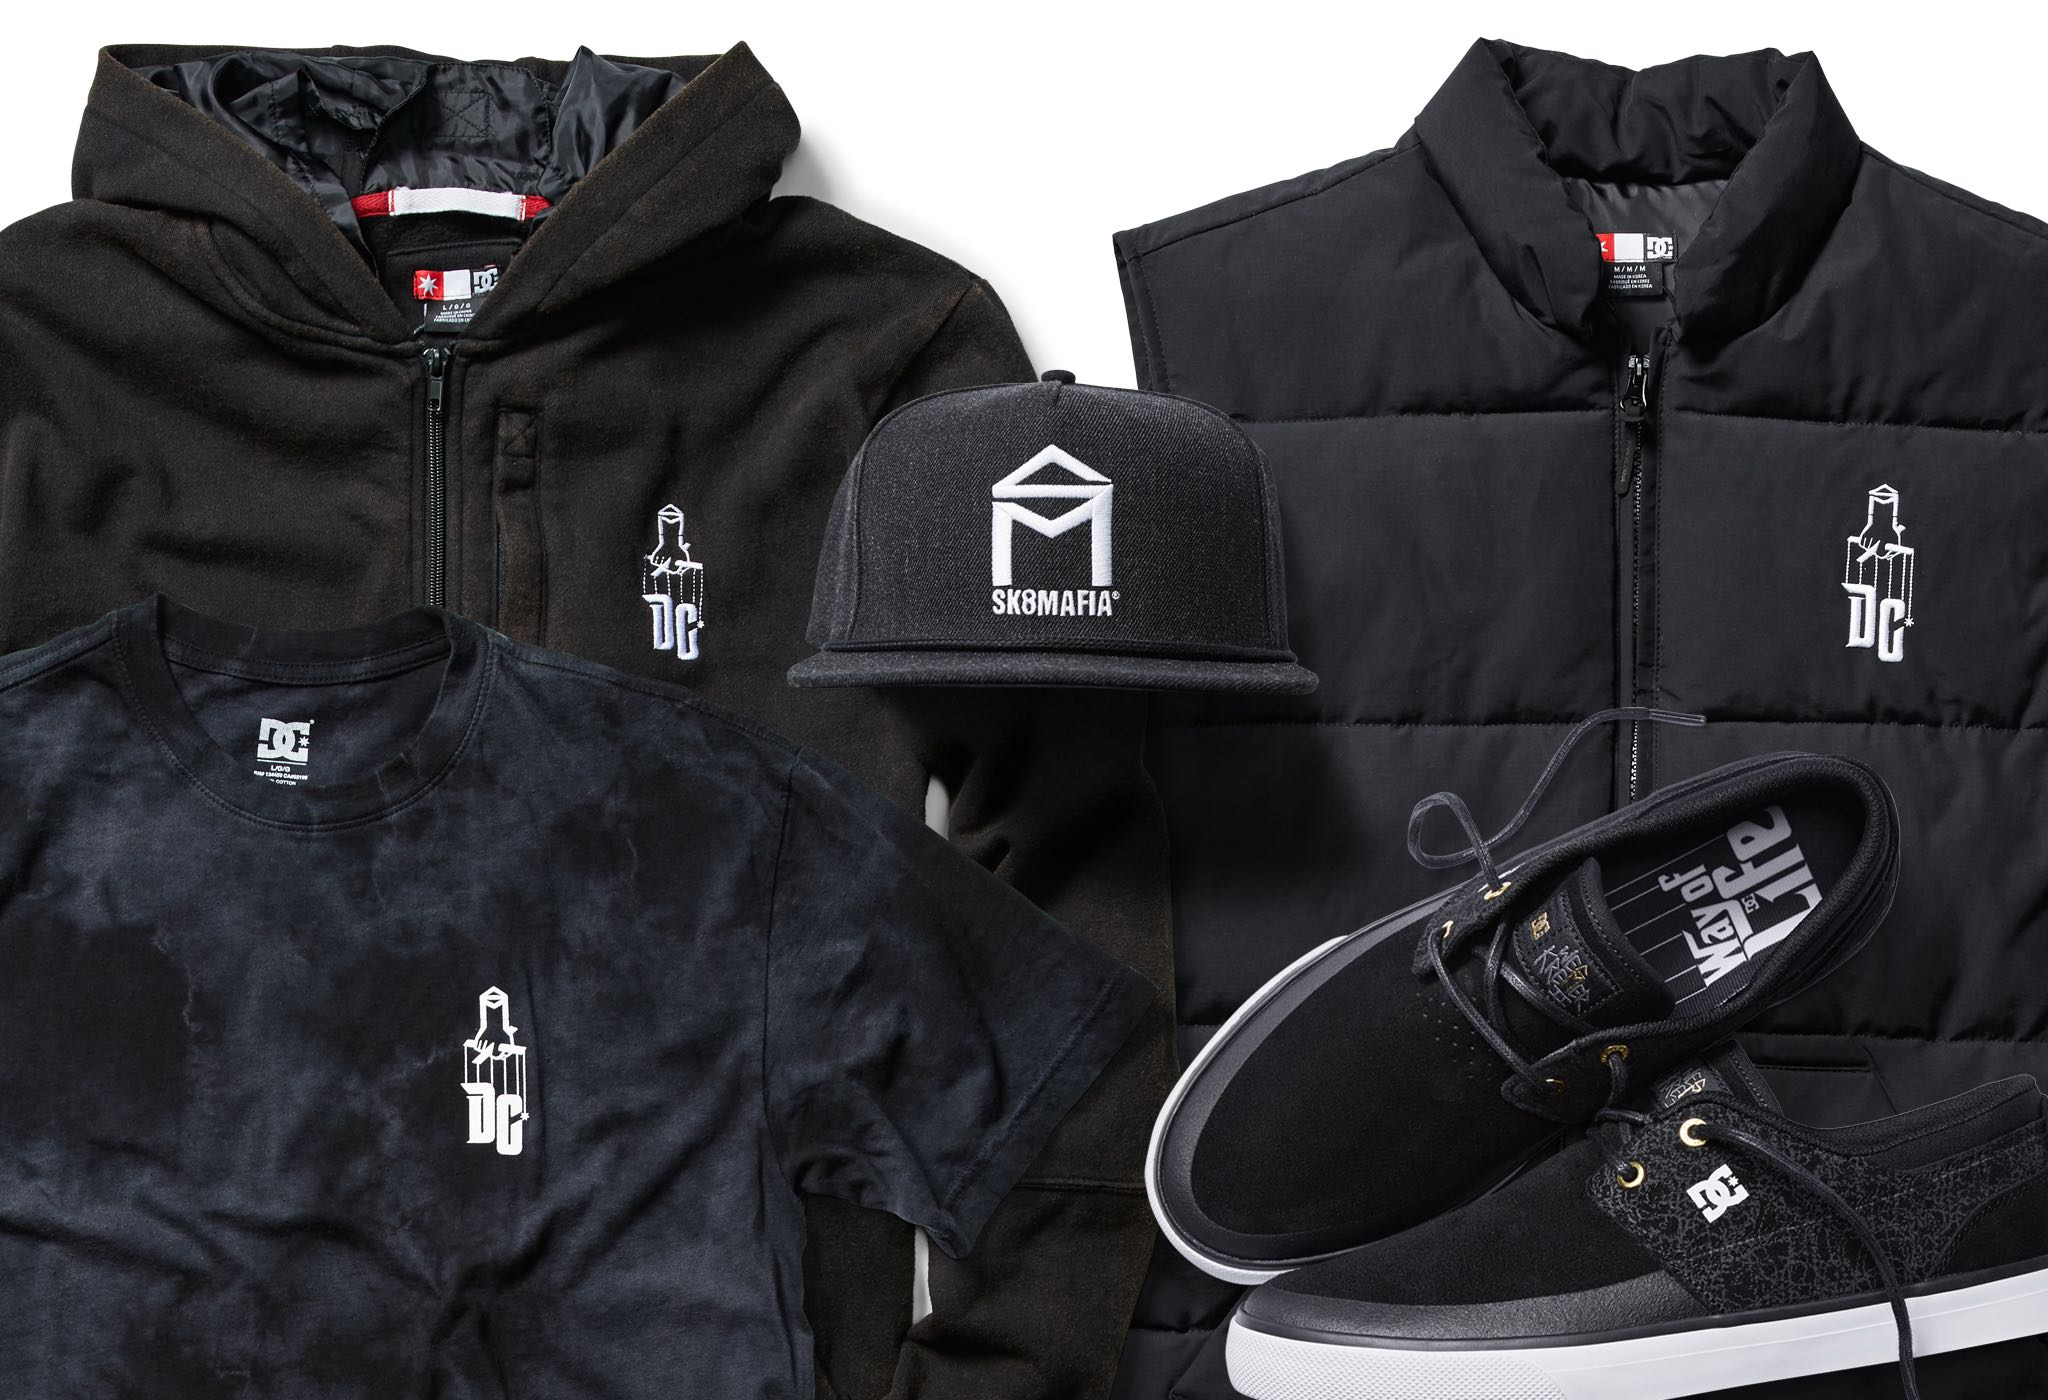 DC Shoes SK8MAFIA Collection now available in South Africa